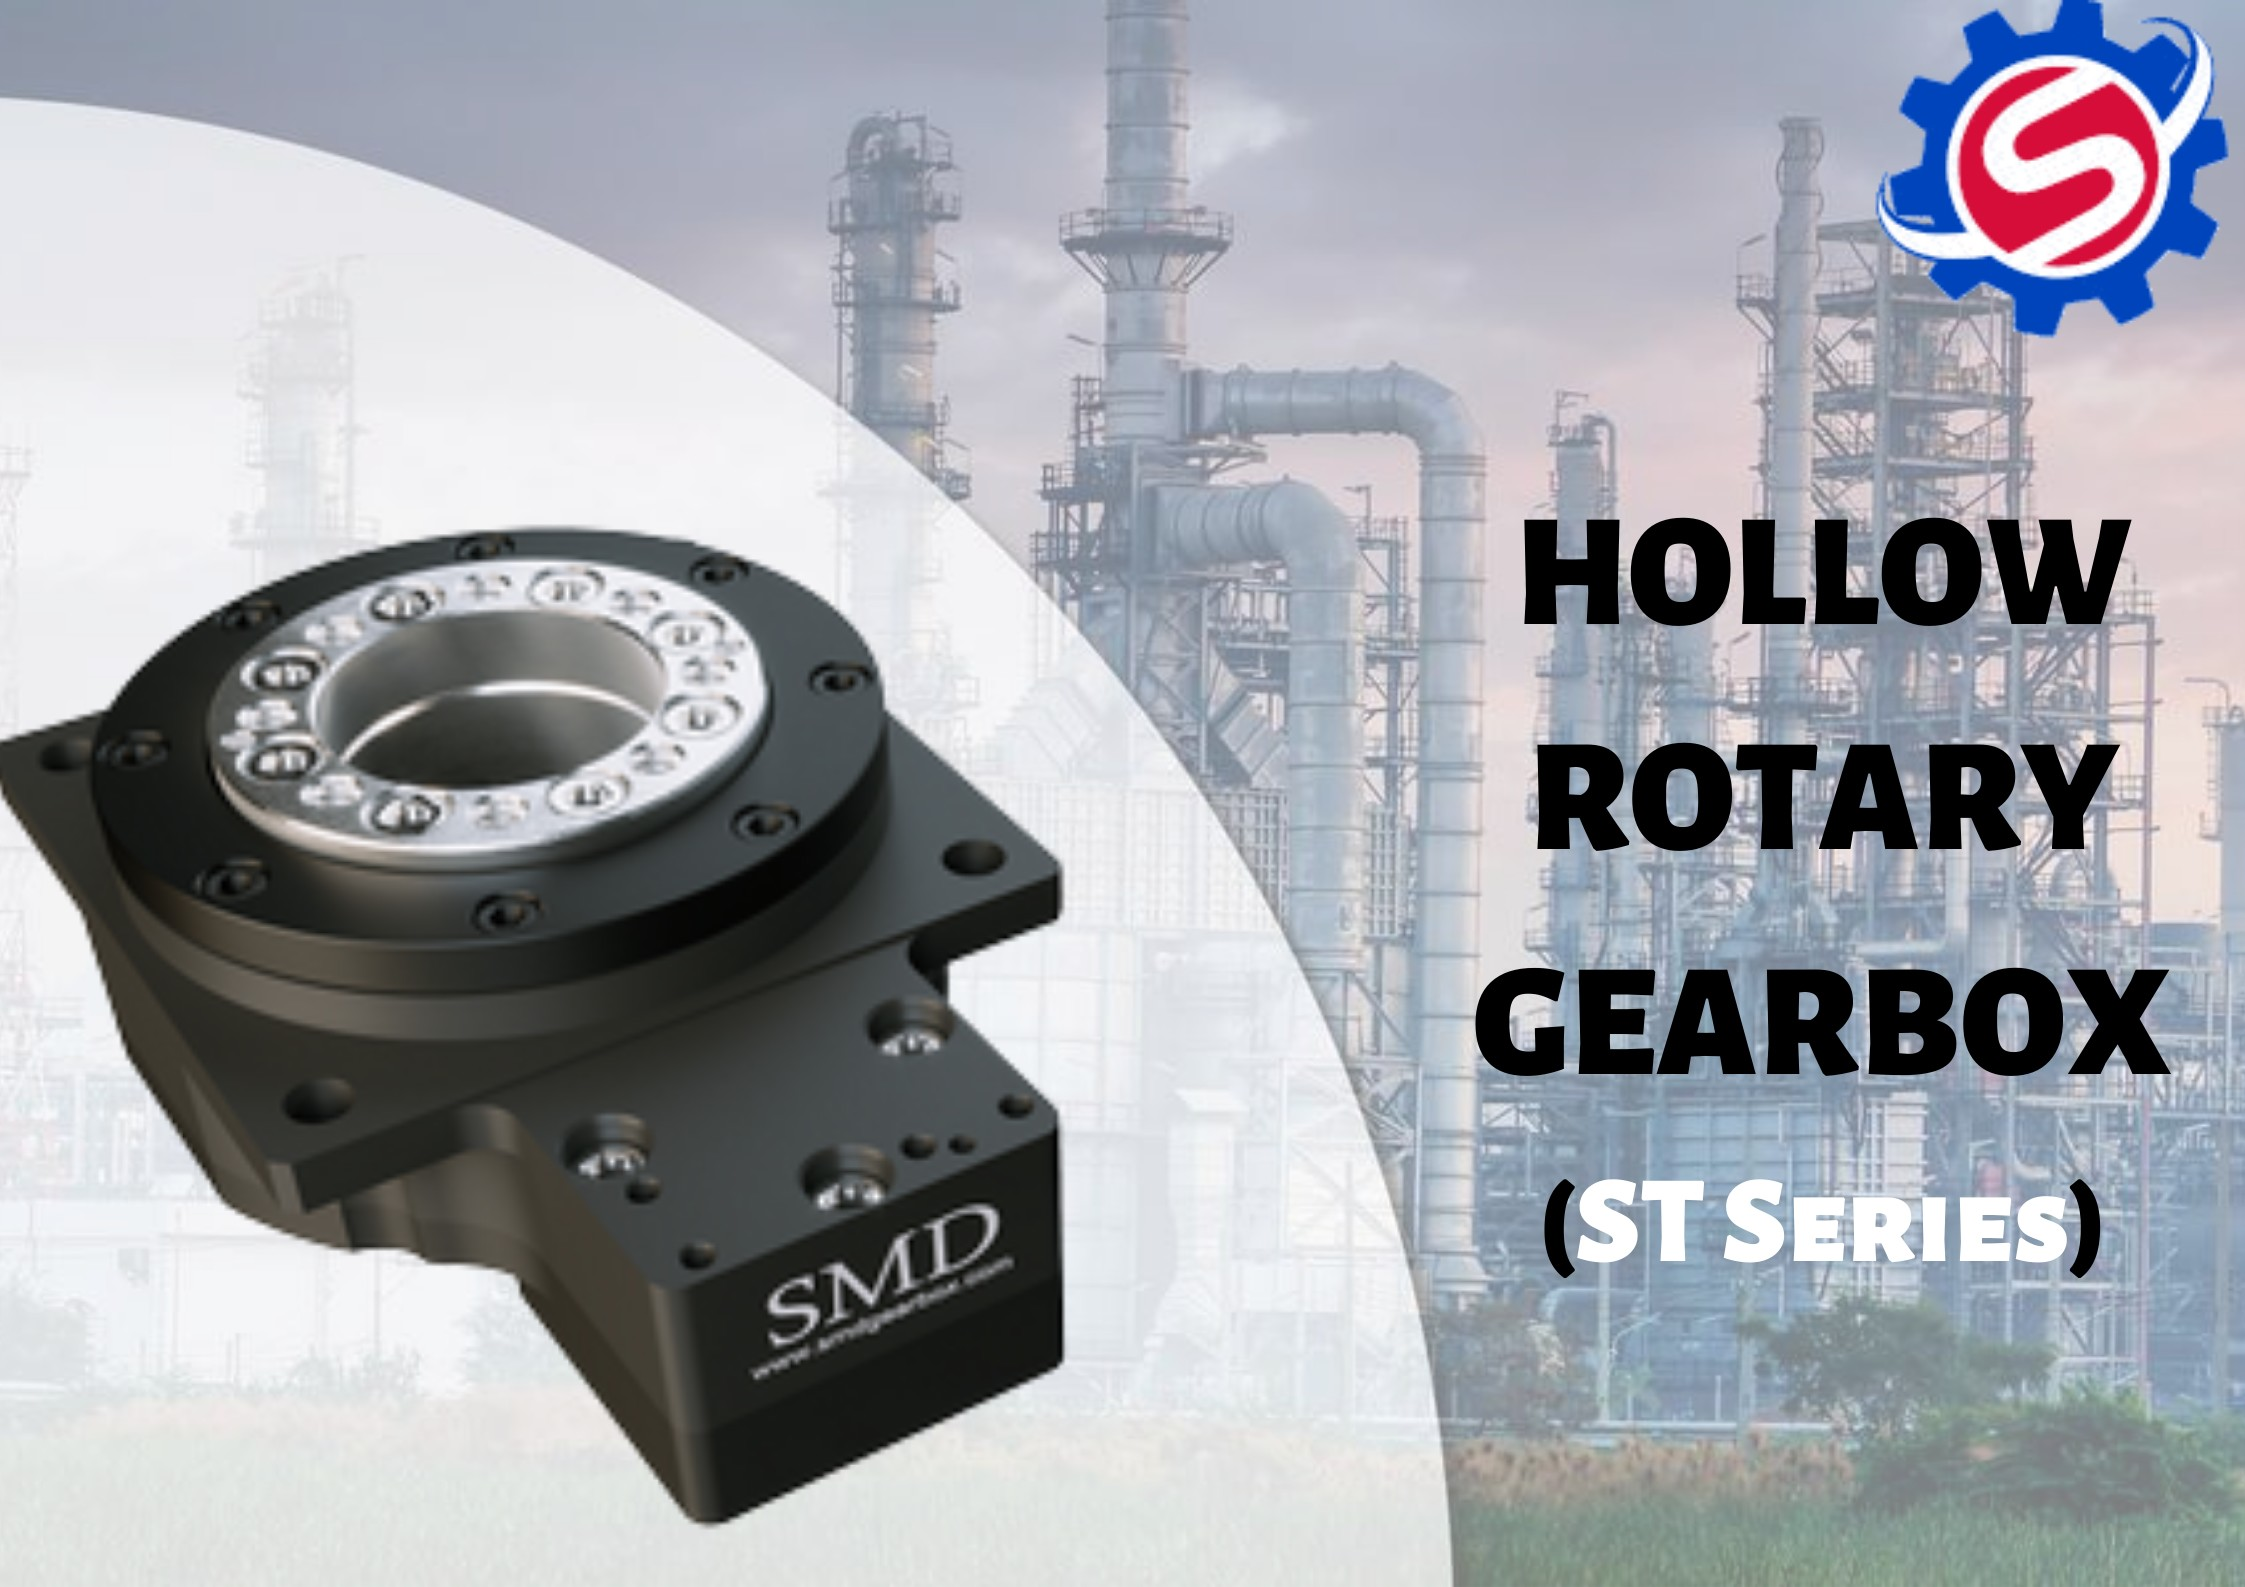 Indexing Table Manufacturer | SMD gearbox